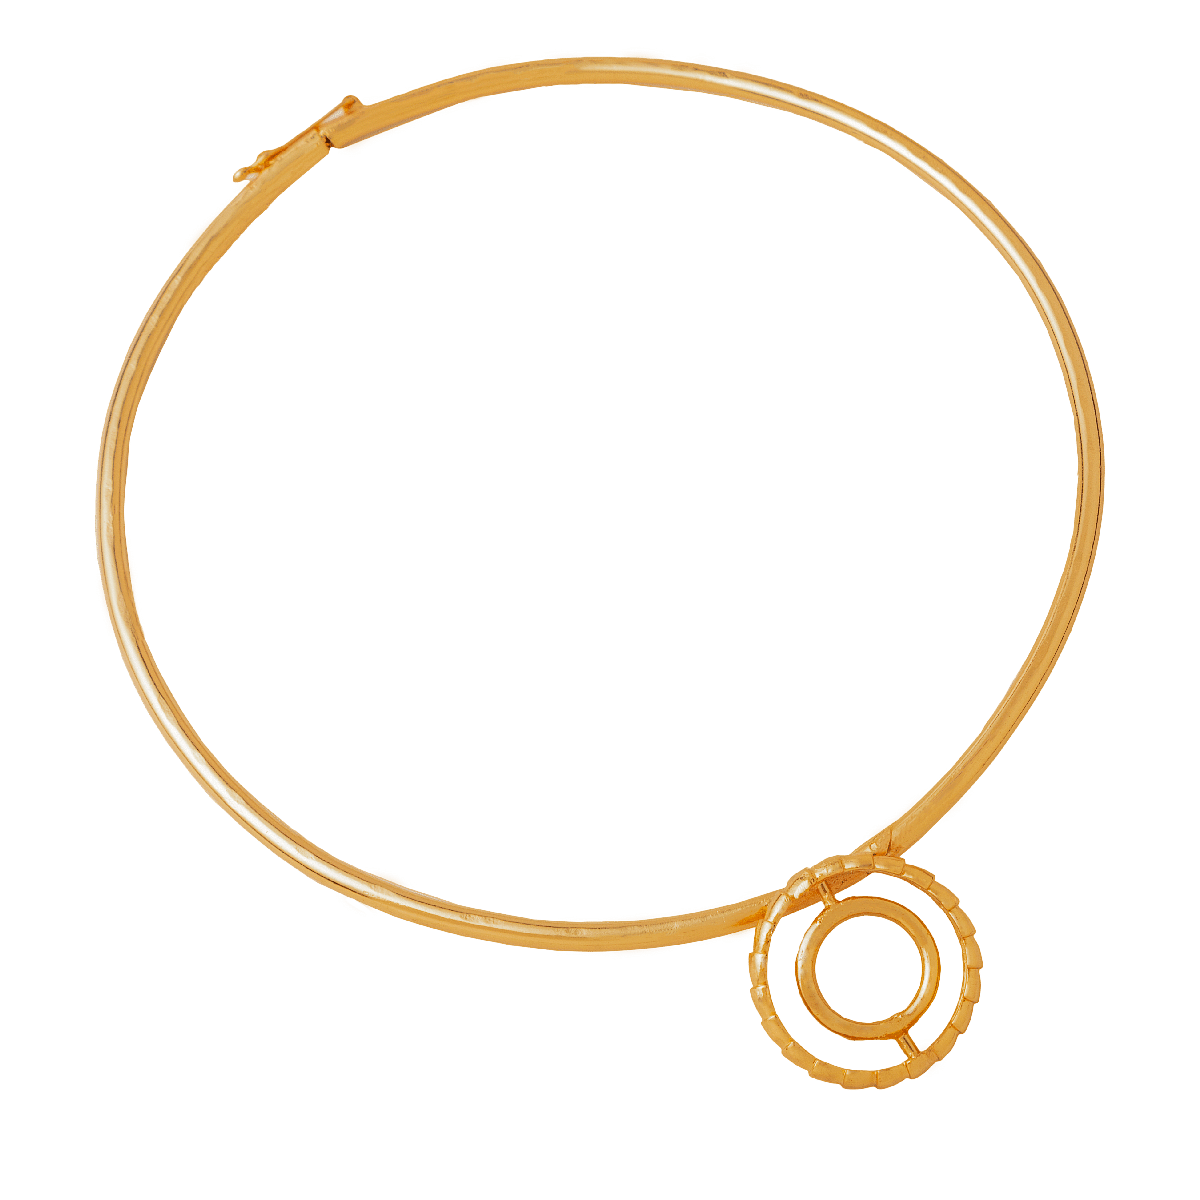 Concentric Circle Hasli Necklace